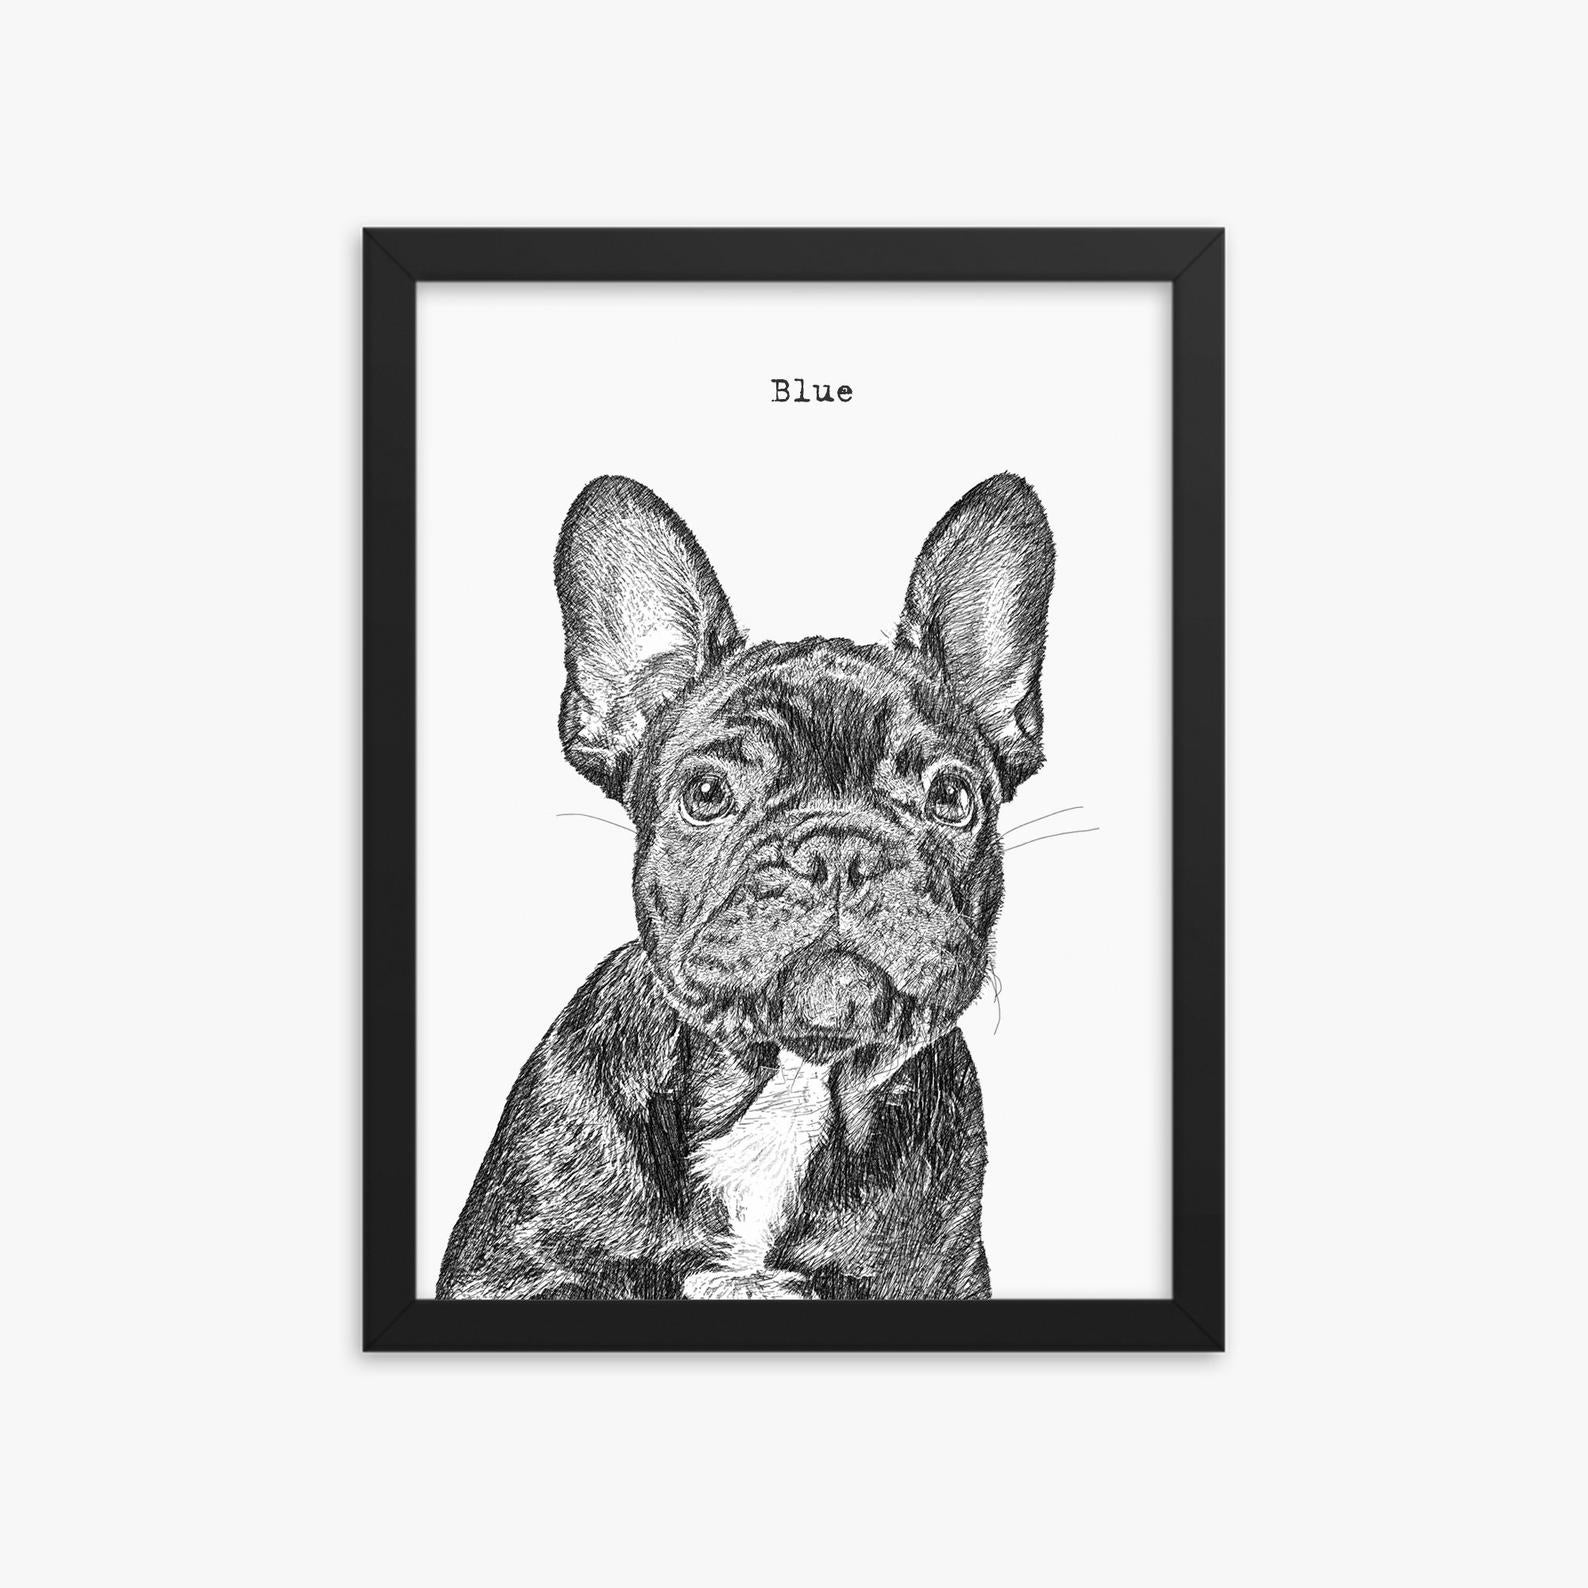 A black and white sketch of a dog with the name